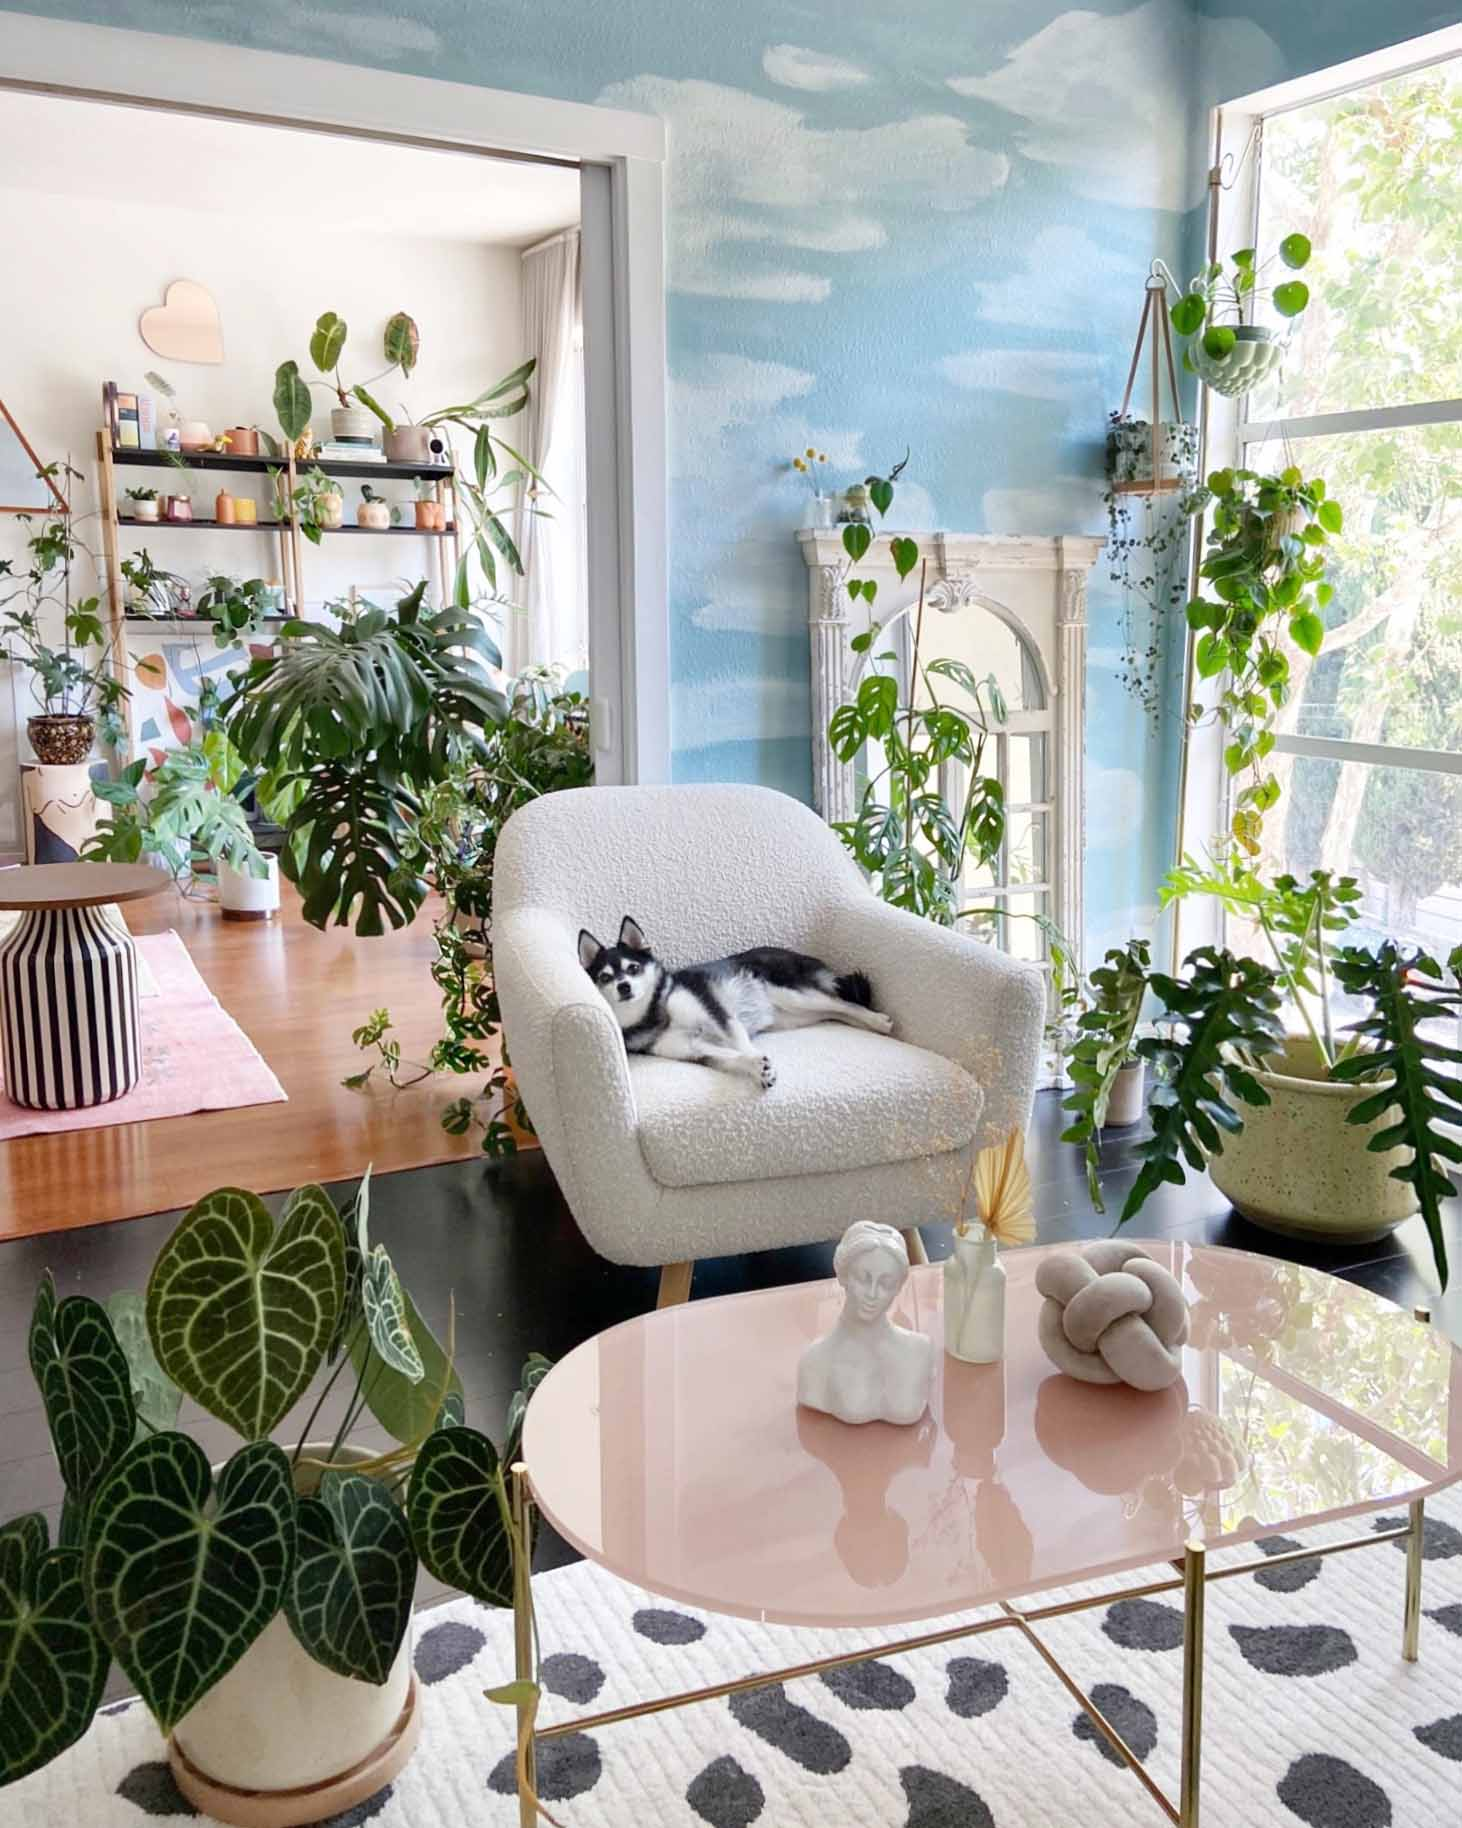 With painted clouds and tons of greenery, this living room is brimming with ideas for indoor plant decor. Step inside and prepare to be mesmerized!